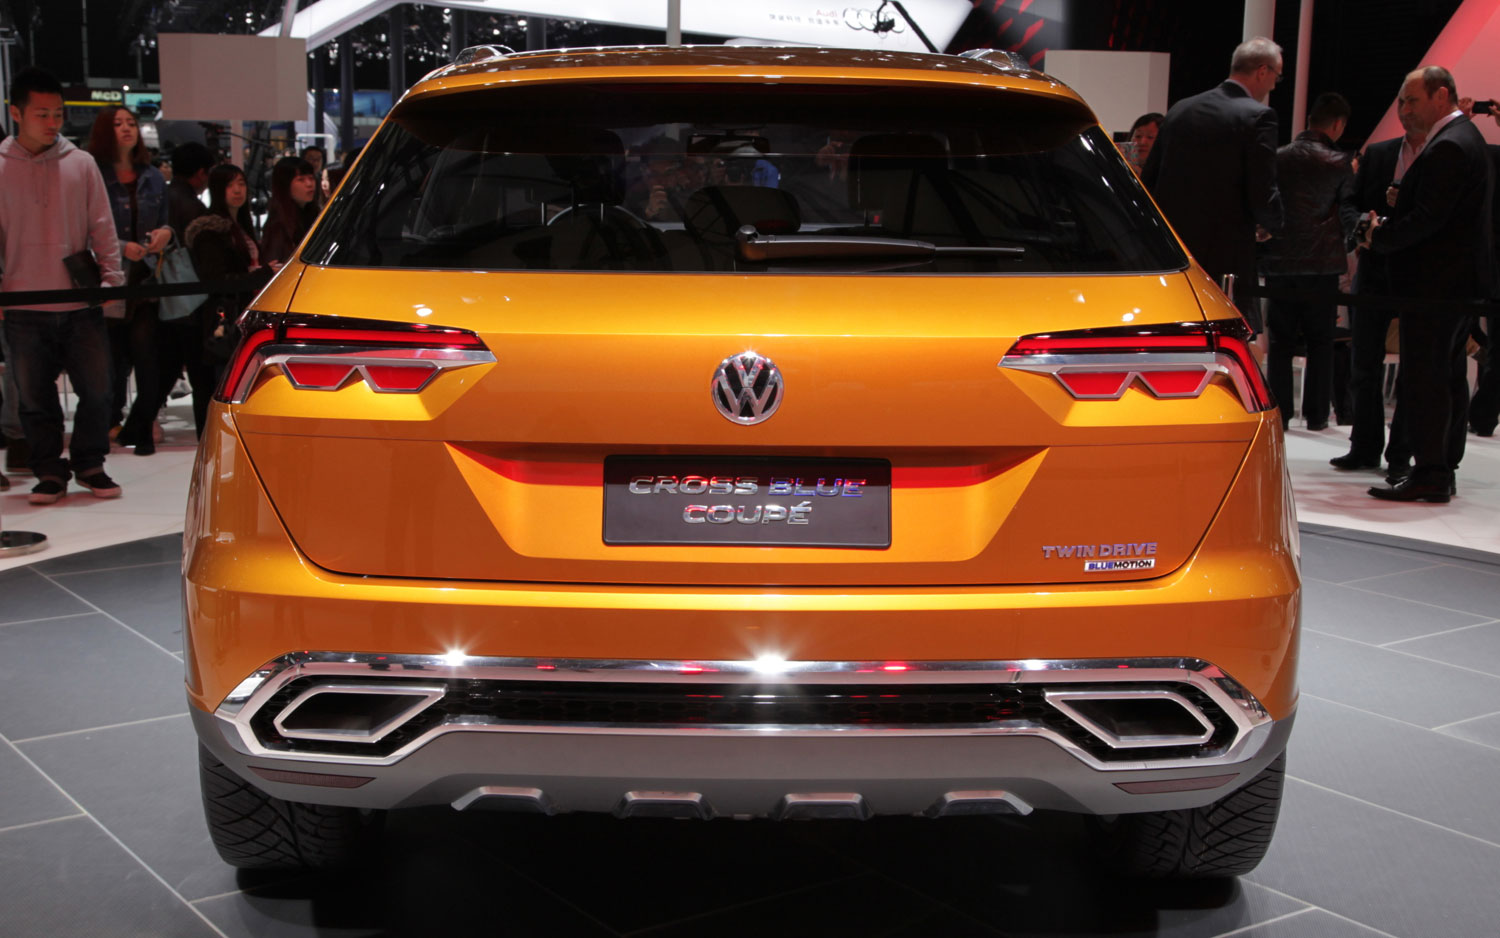 2013 Volkswagen CrossBlue Coupe Rear View